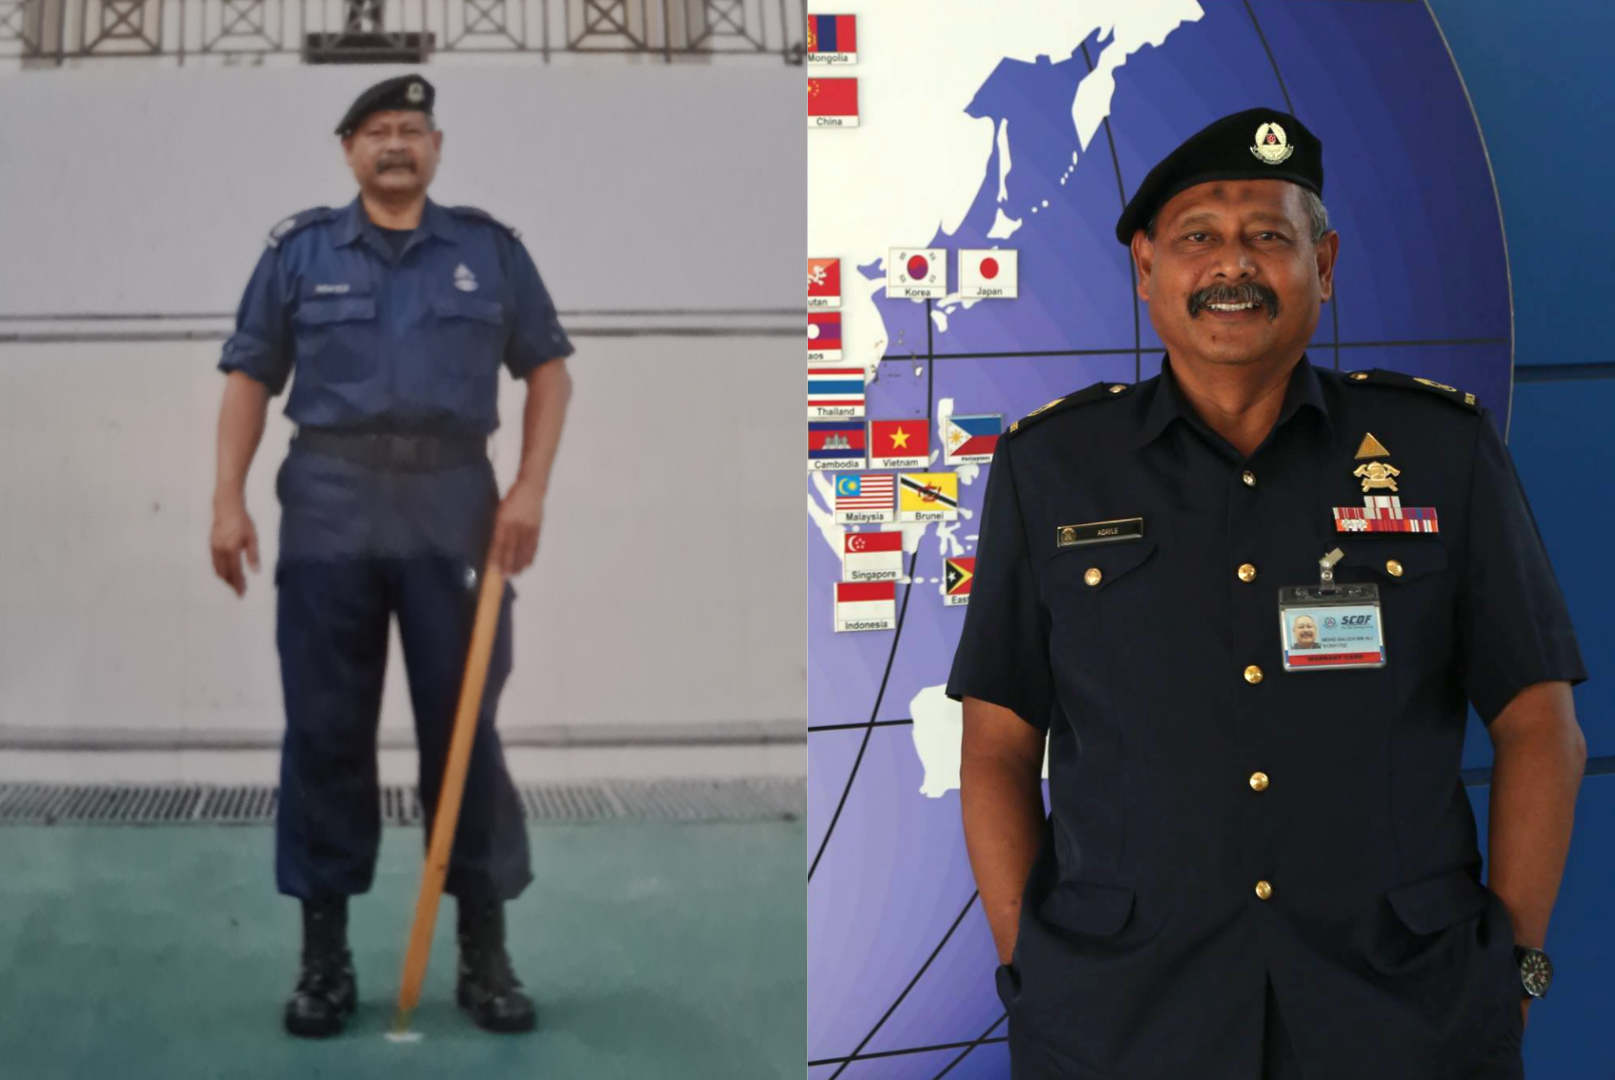 SWO (RET) Md Salleh had been a senior trainer at the Civil Defence Academy since its establishment in 1999 until his recent retirement this year.